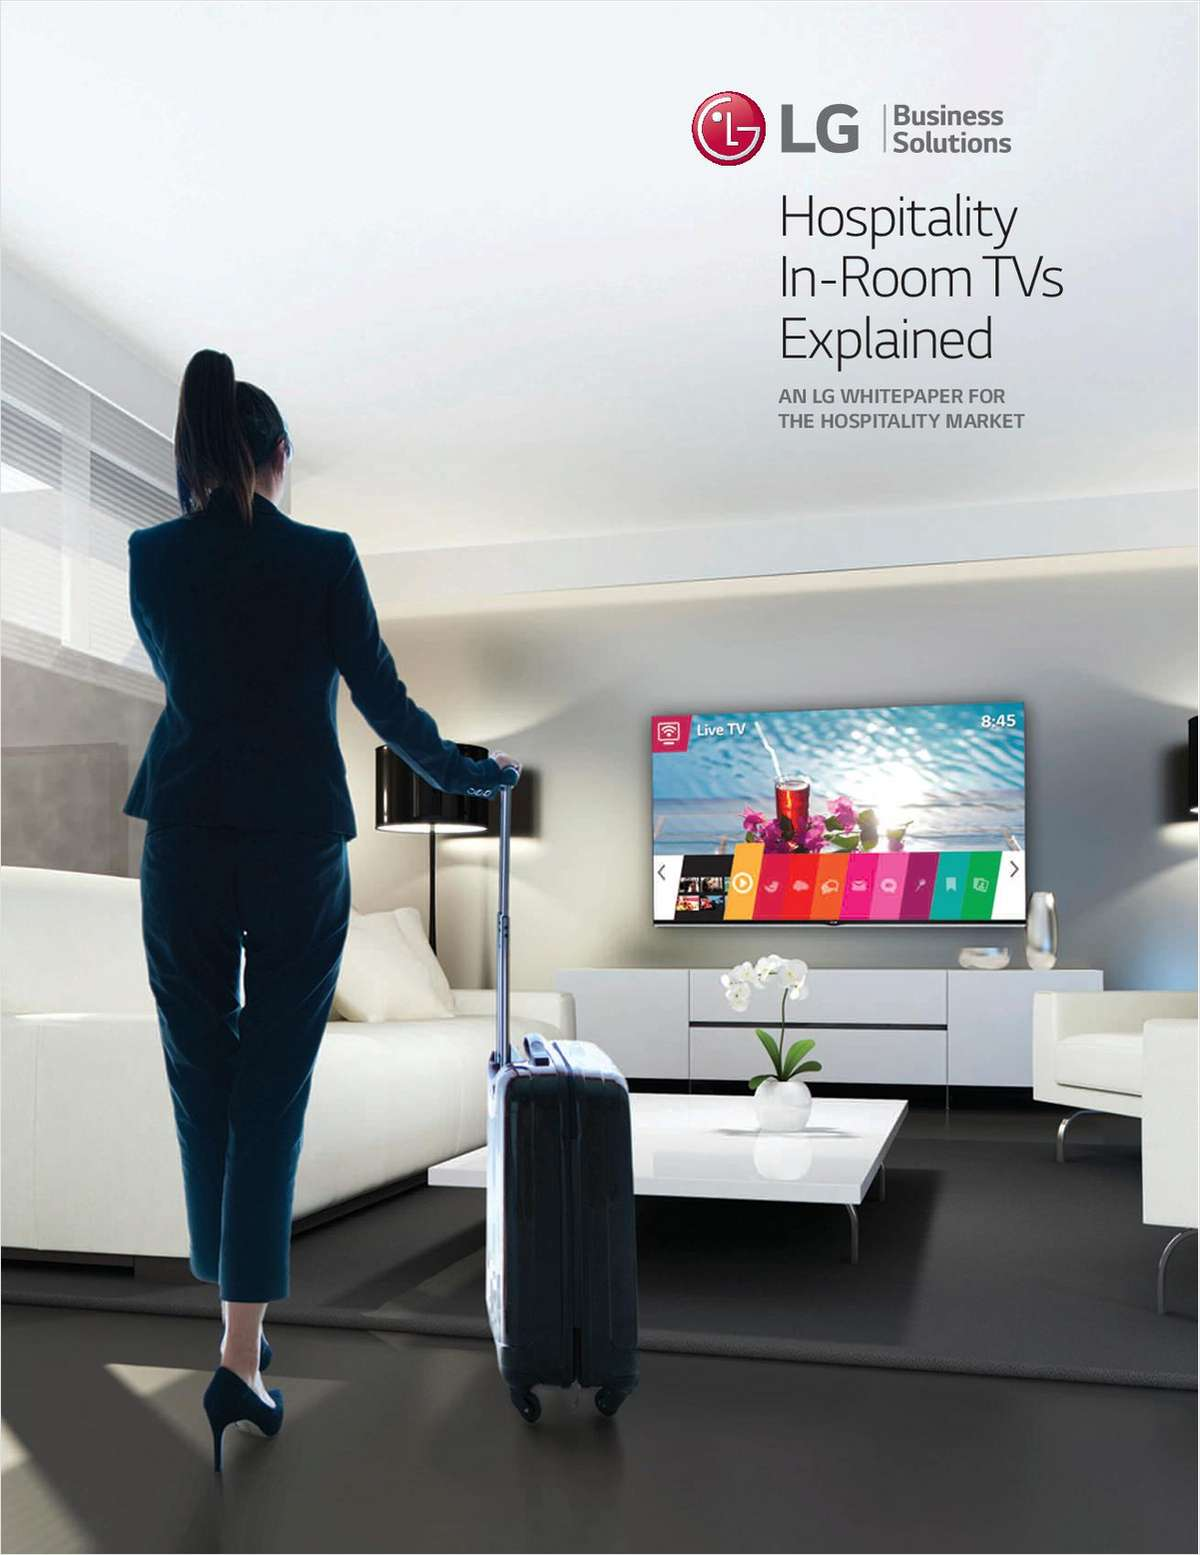 Hospitality In-Room TVs Explained